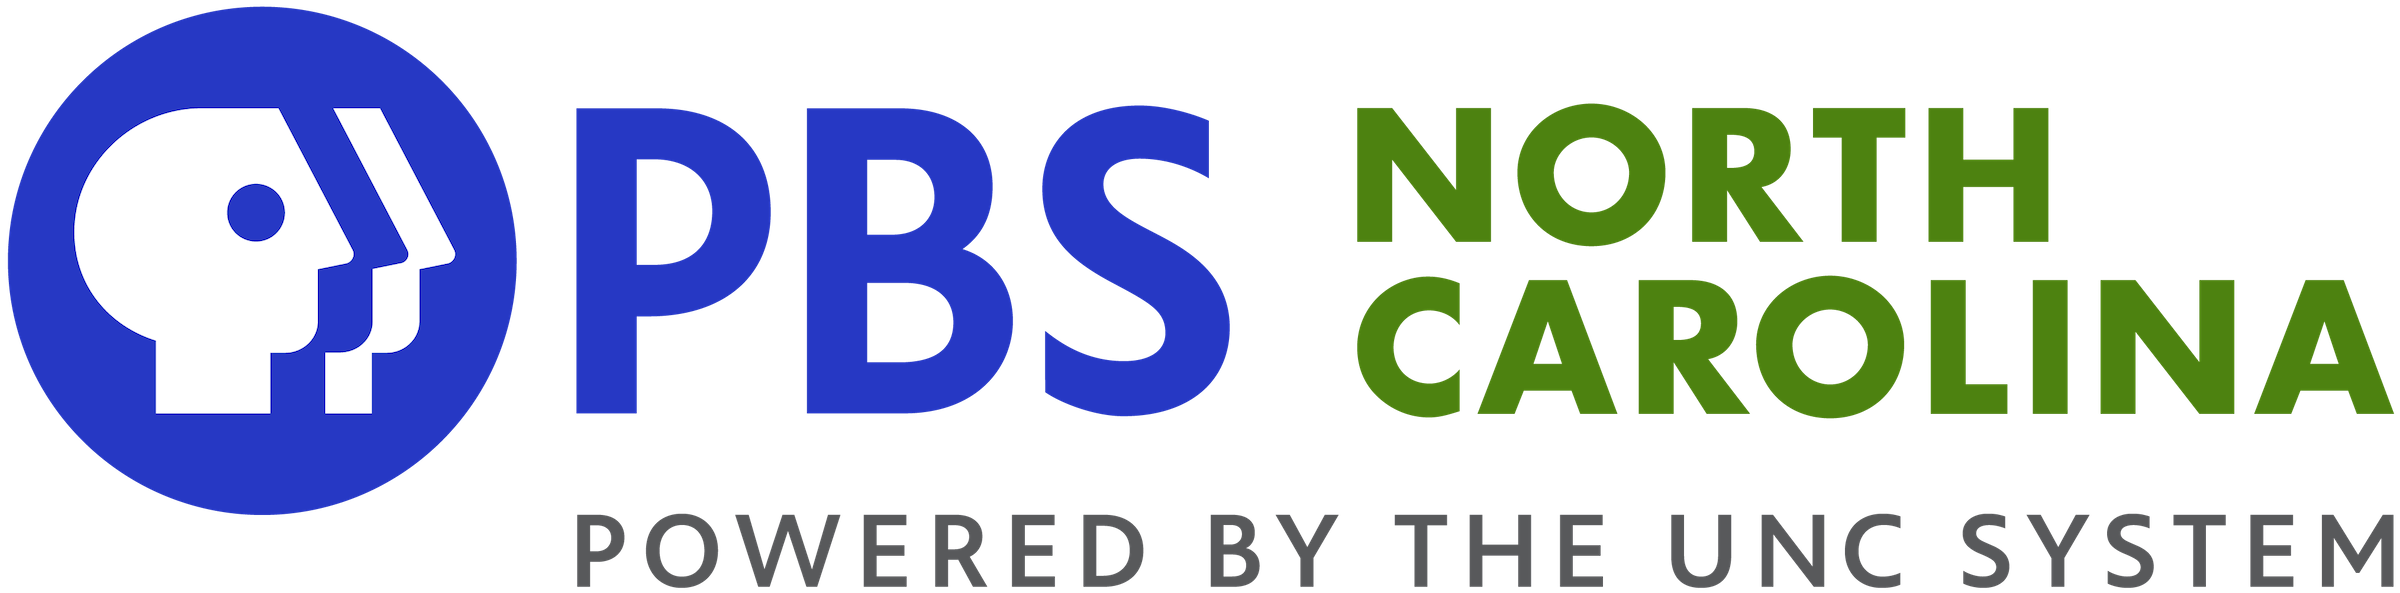 PBS North Carolina